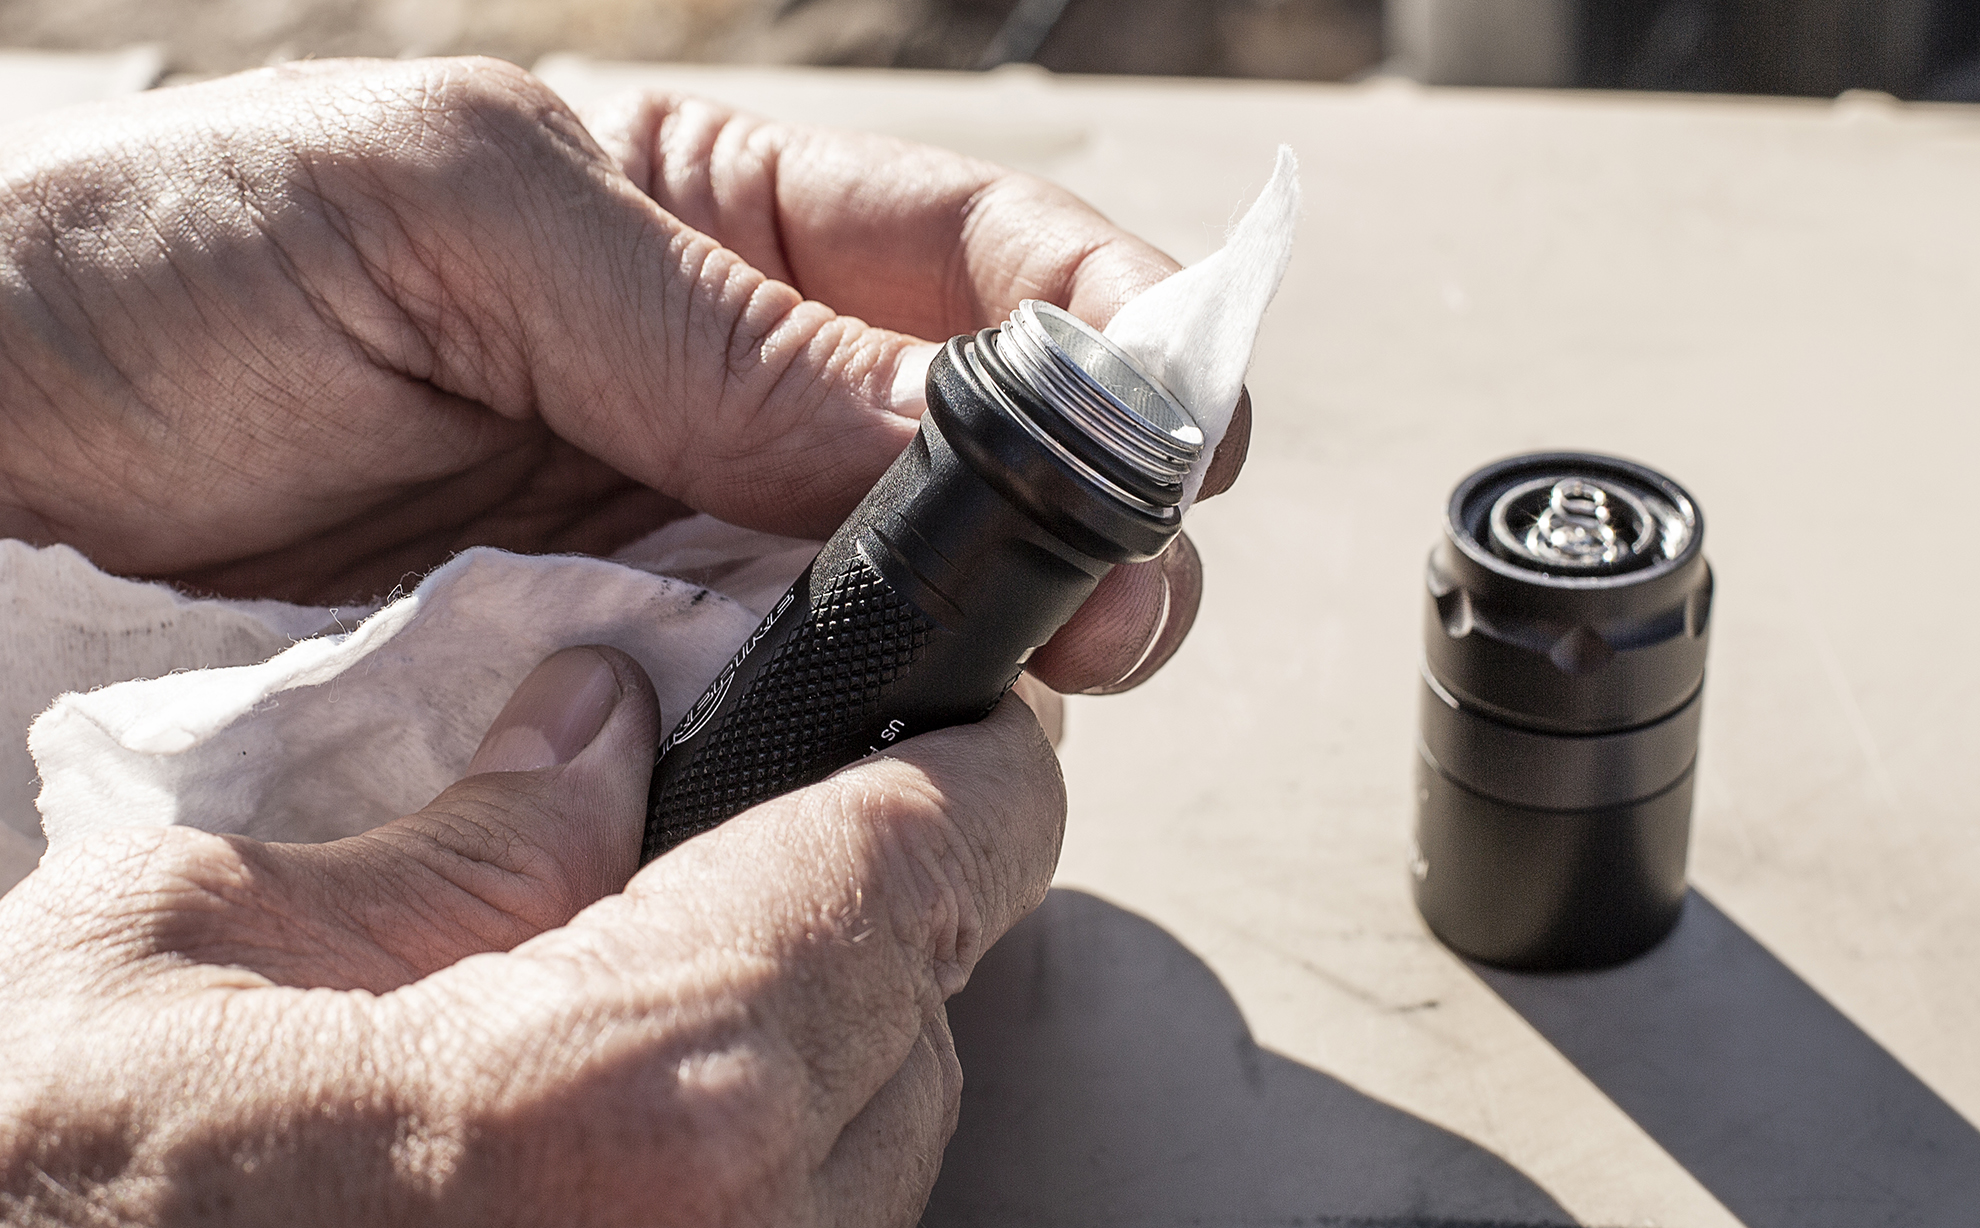 SureFire flashlight tailcap being cleaned